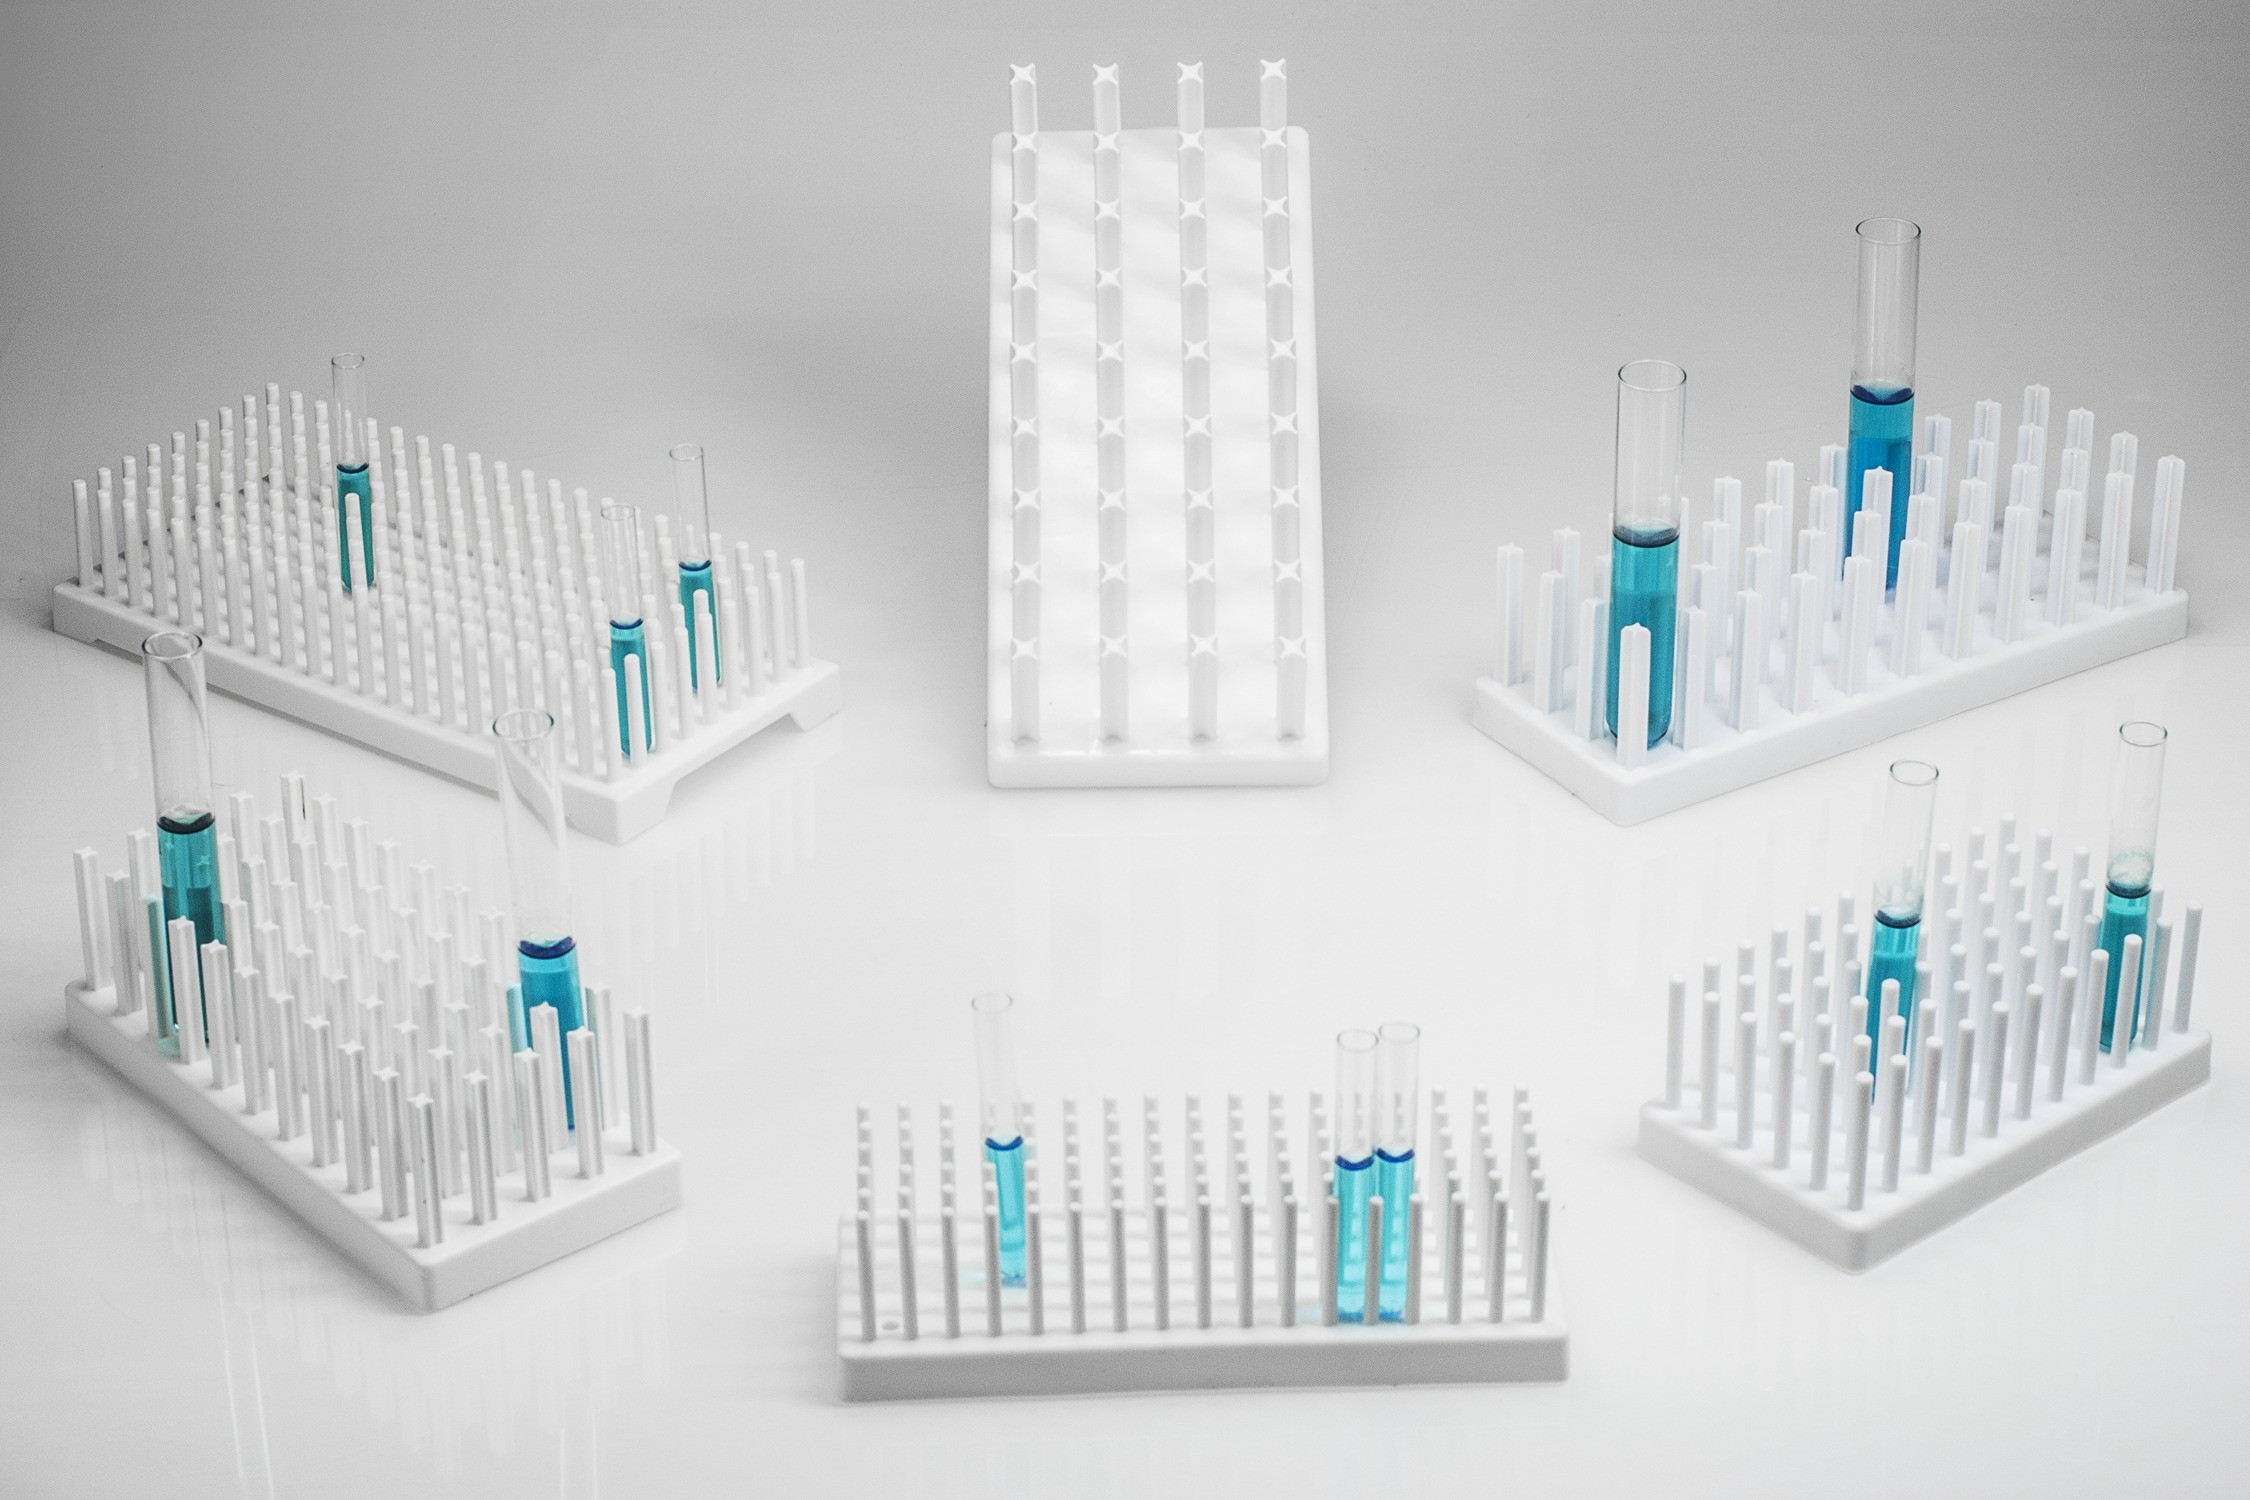 Full-View Test Tube Supports